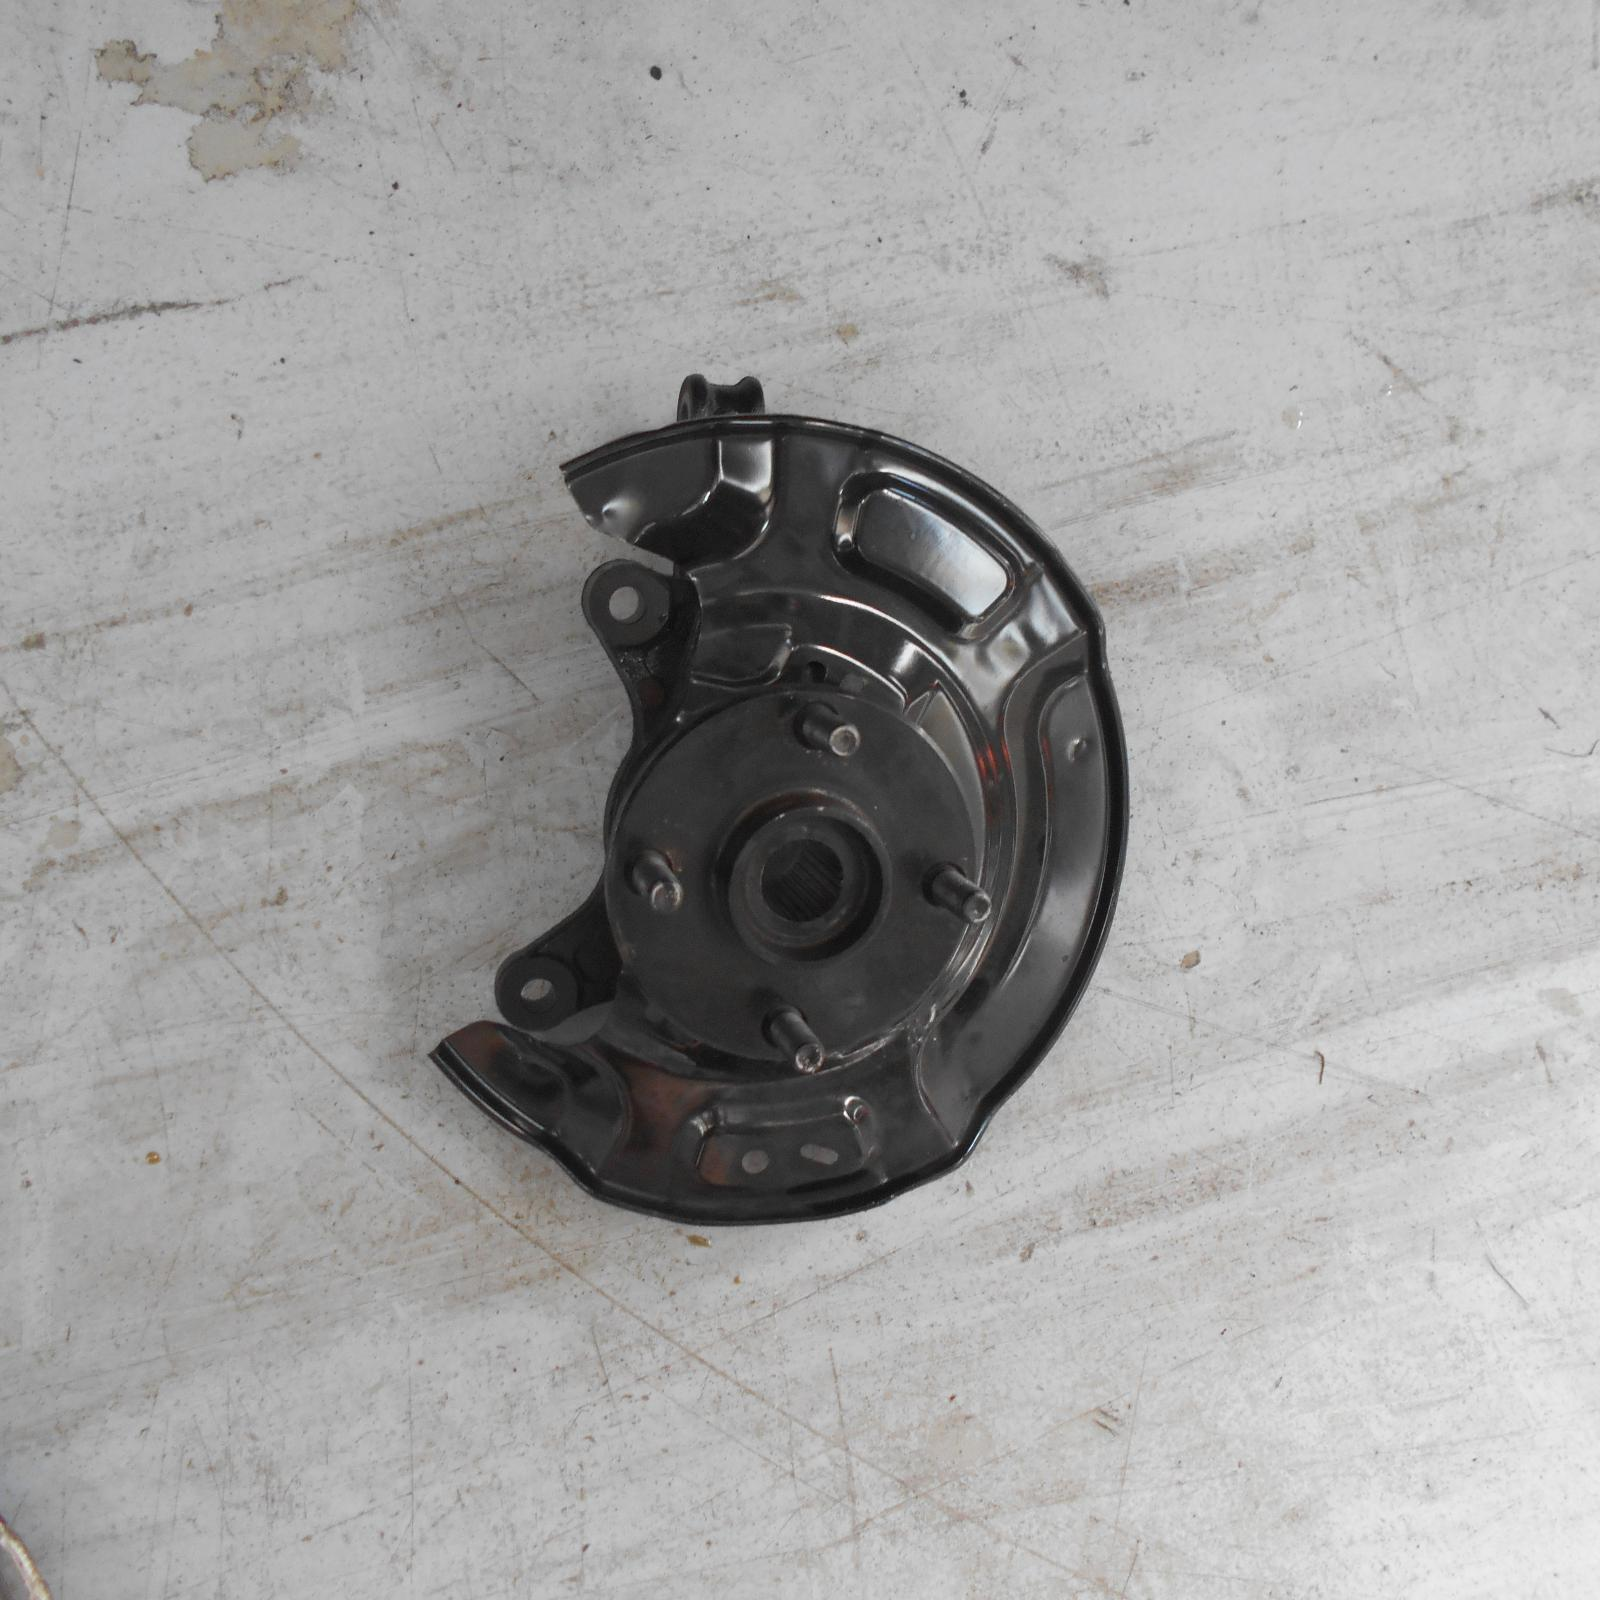 TOYOTA PRIUS, Left Front Hub Assembly, NHP10R, 03/12-